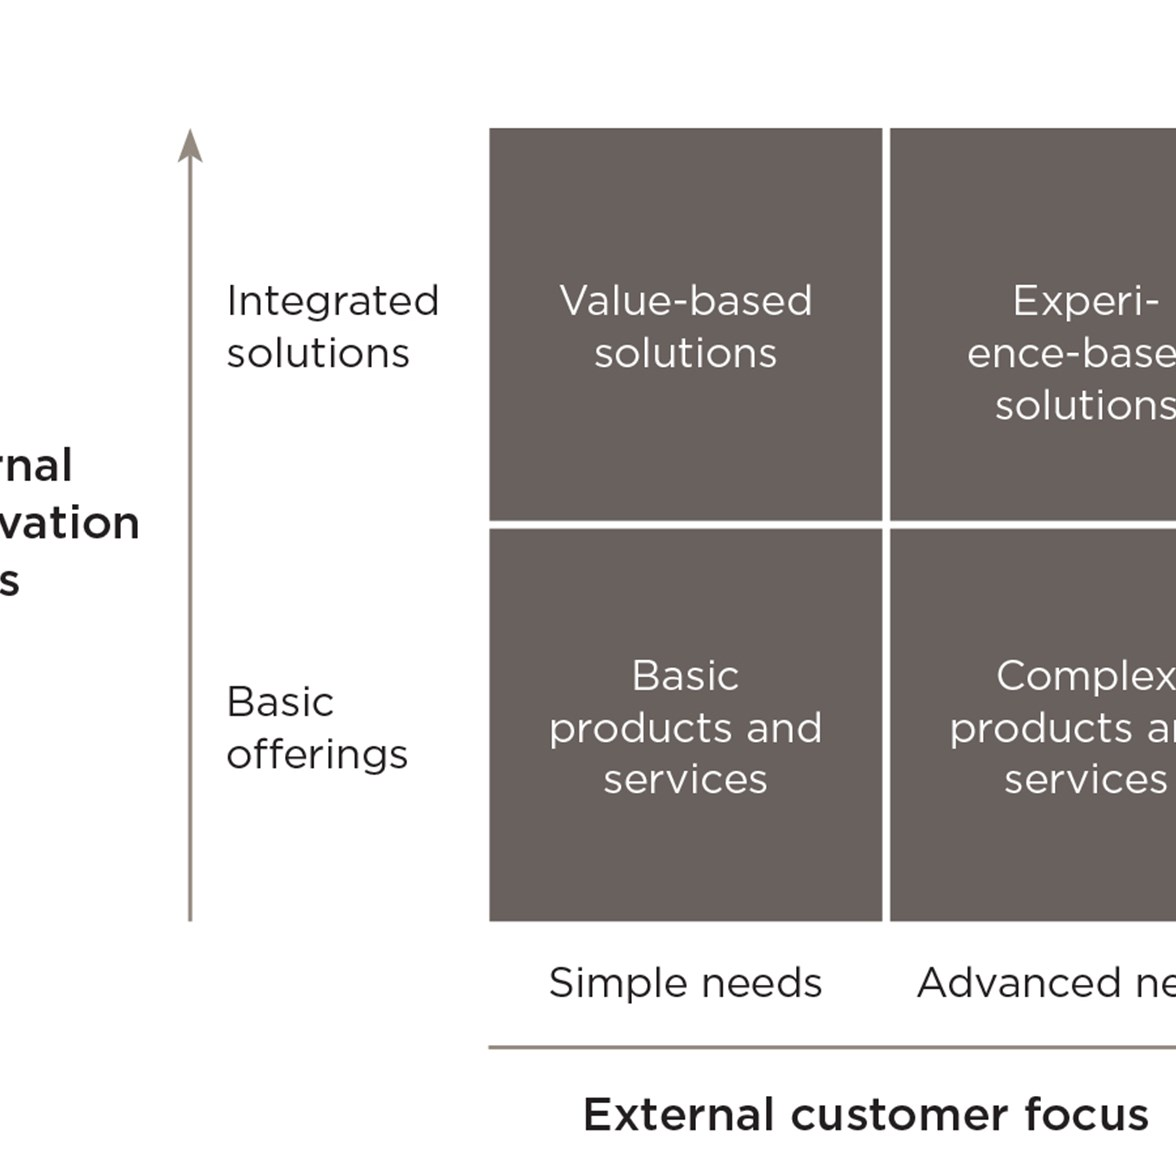 Customer and innovation focus matrix